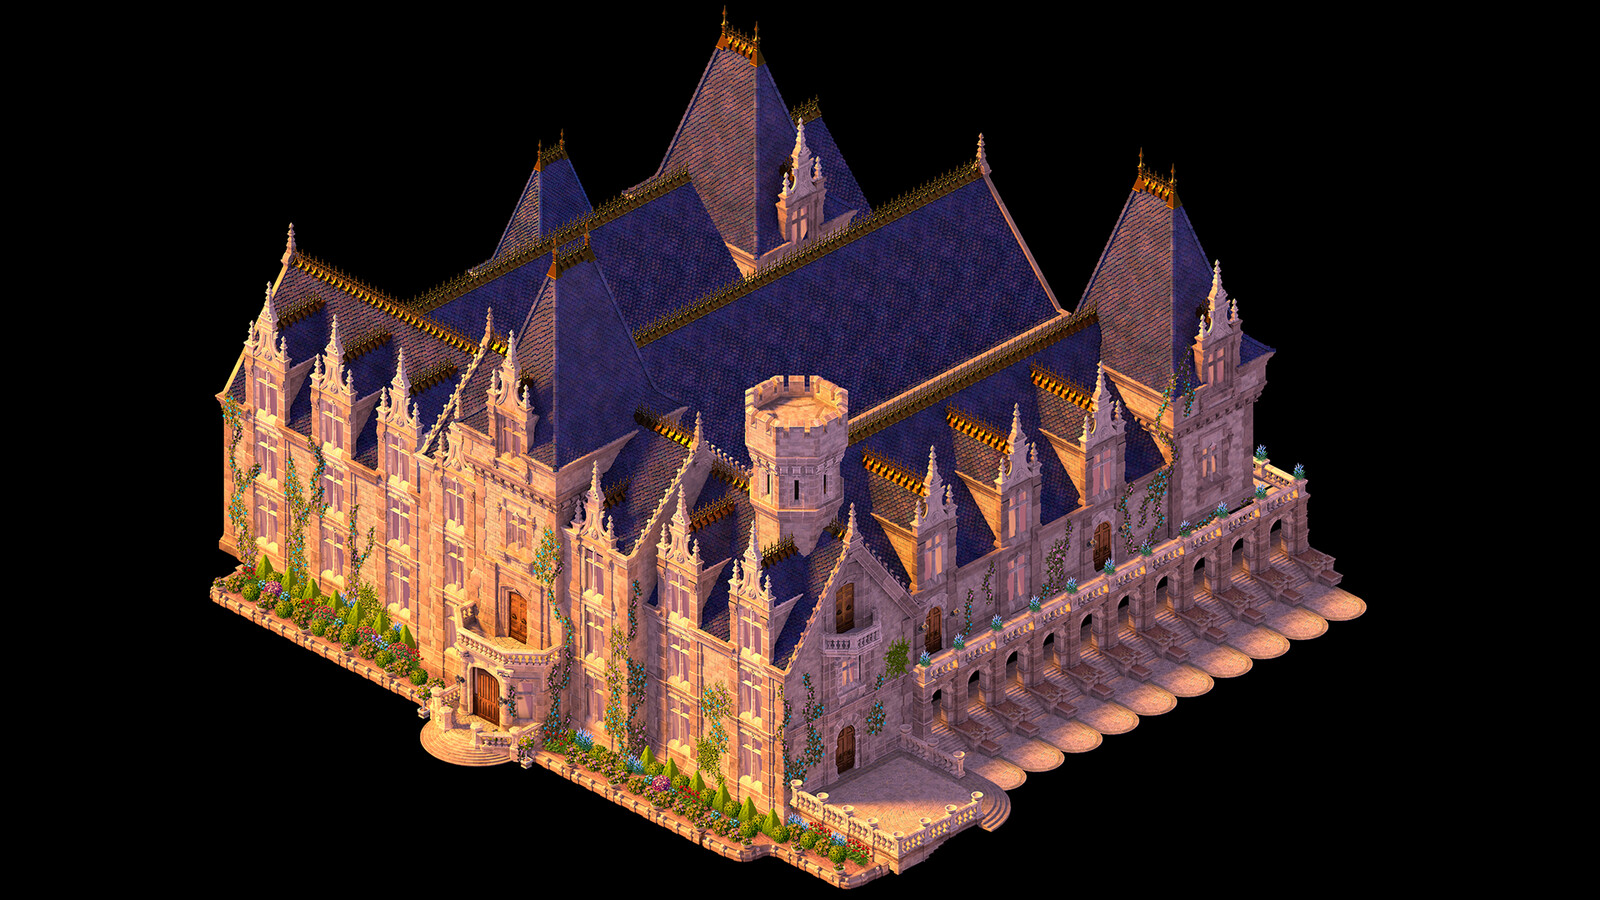 The Manor I was responsible for modelling. There were some major challenges in getting it to blend seamlessly with the interior while also ensuring each room had enough space to play out the narrative of the game.